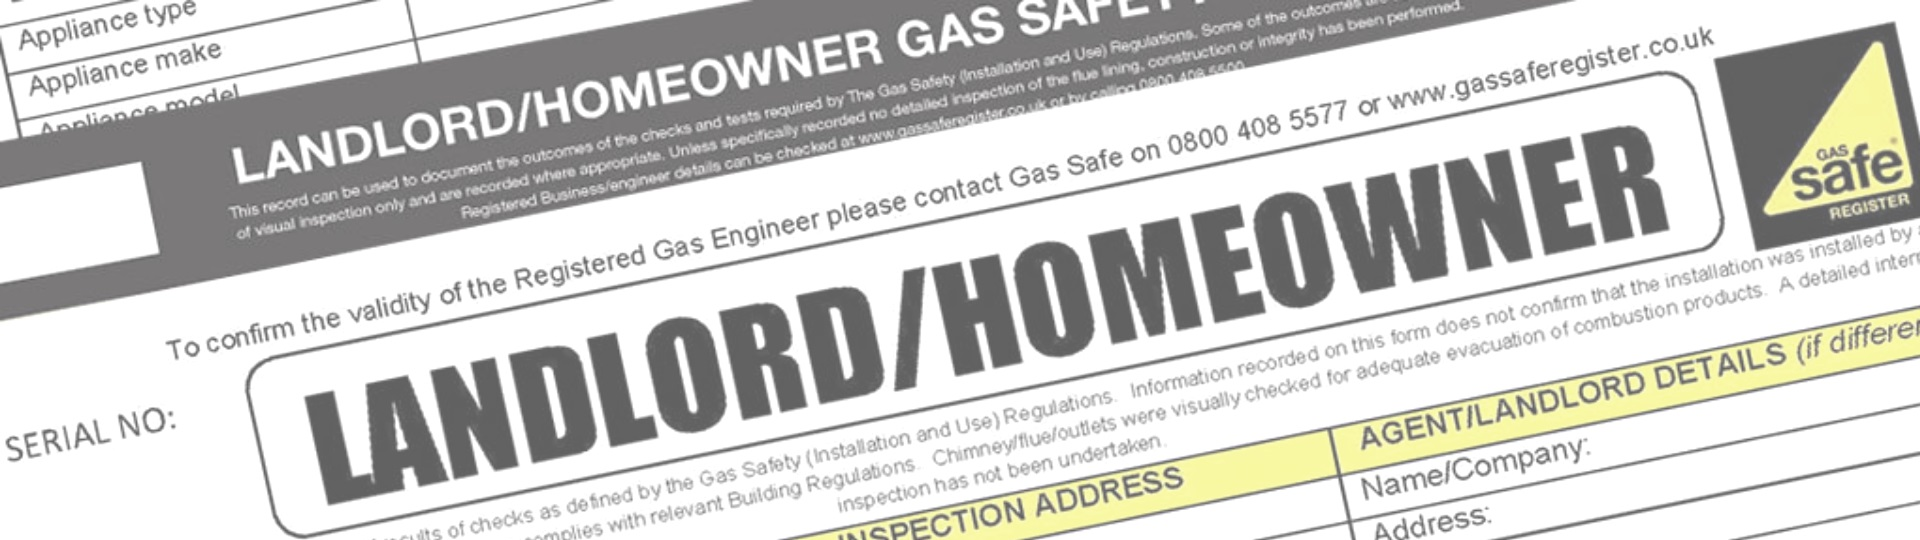 Gas Saftey Certificates Redfield